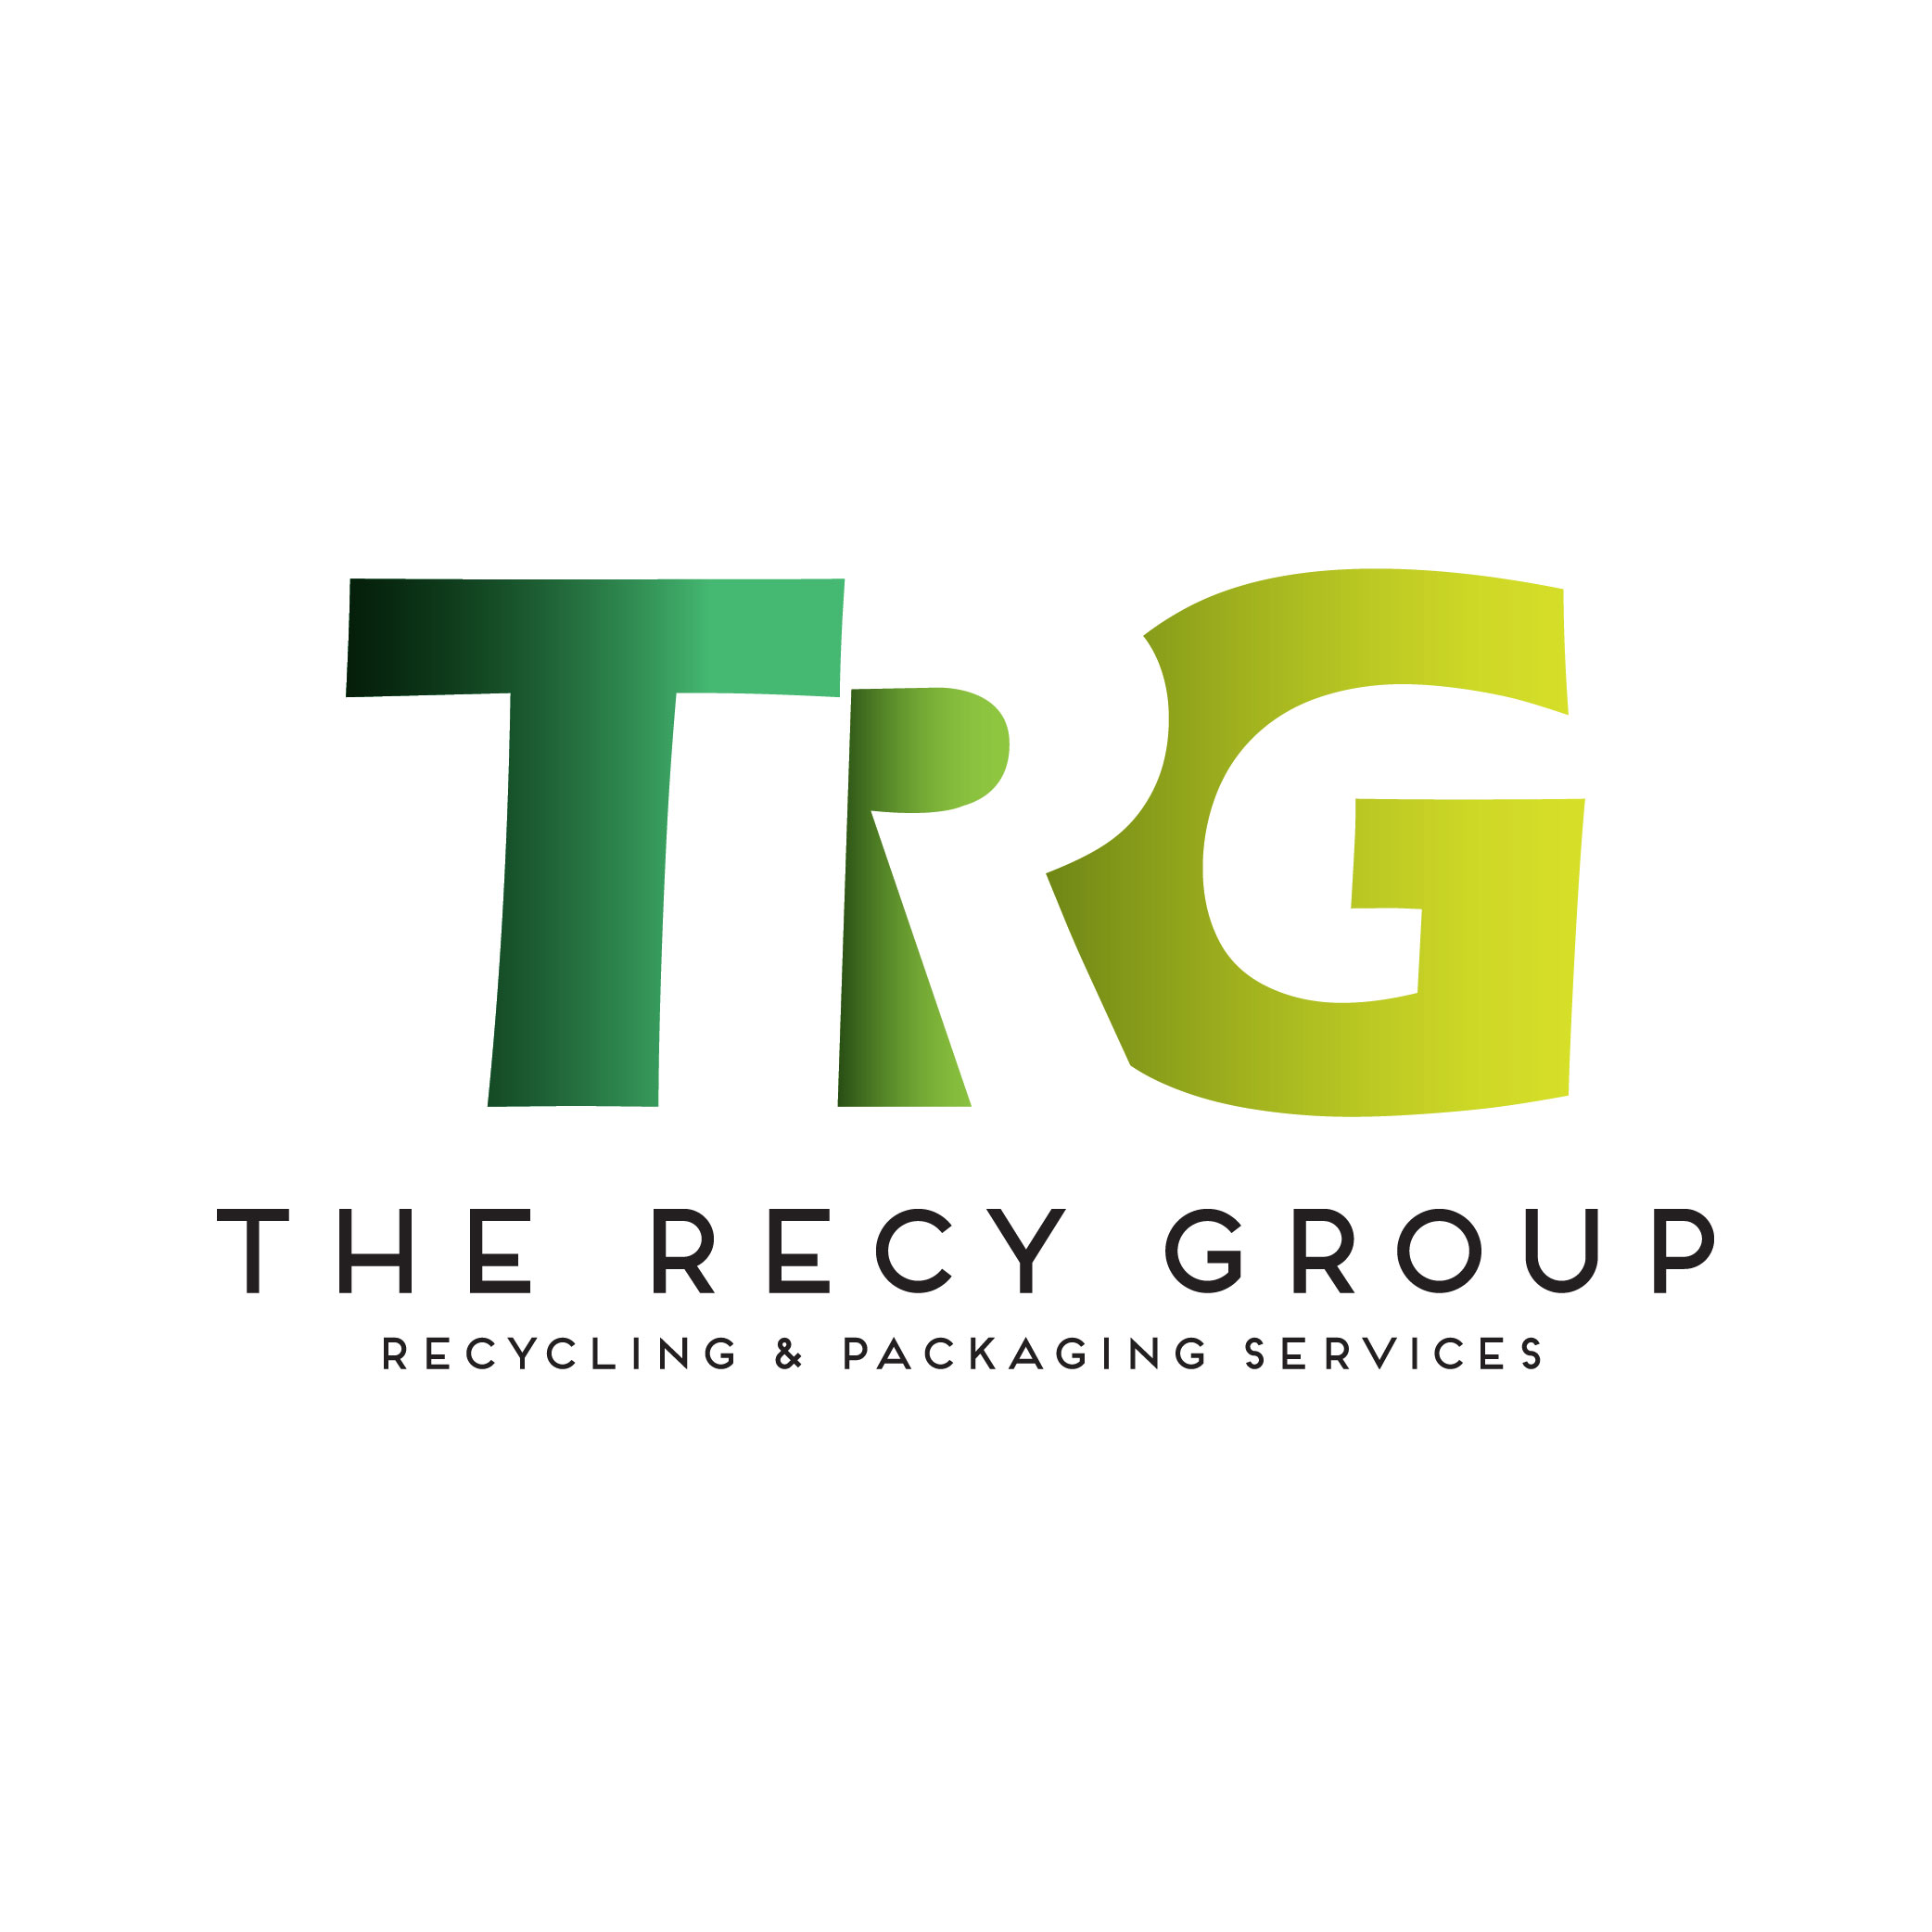 The Recy Group-01.jpg